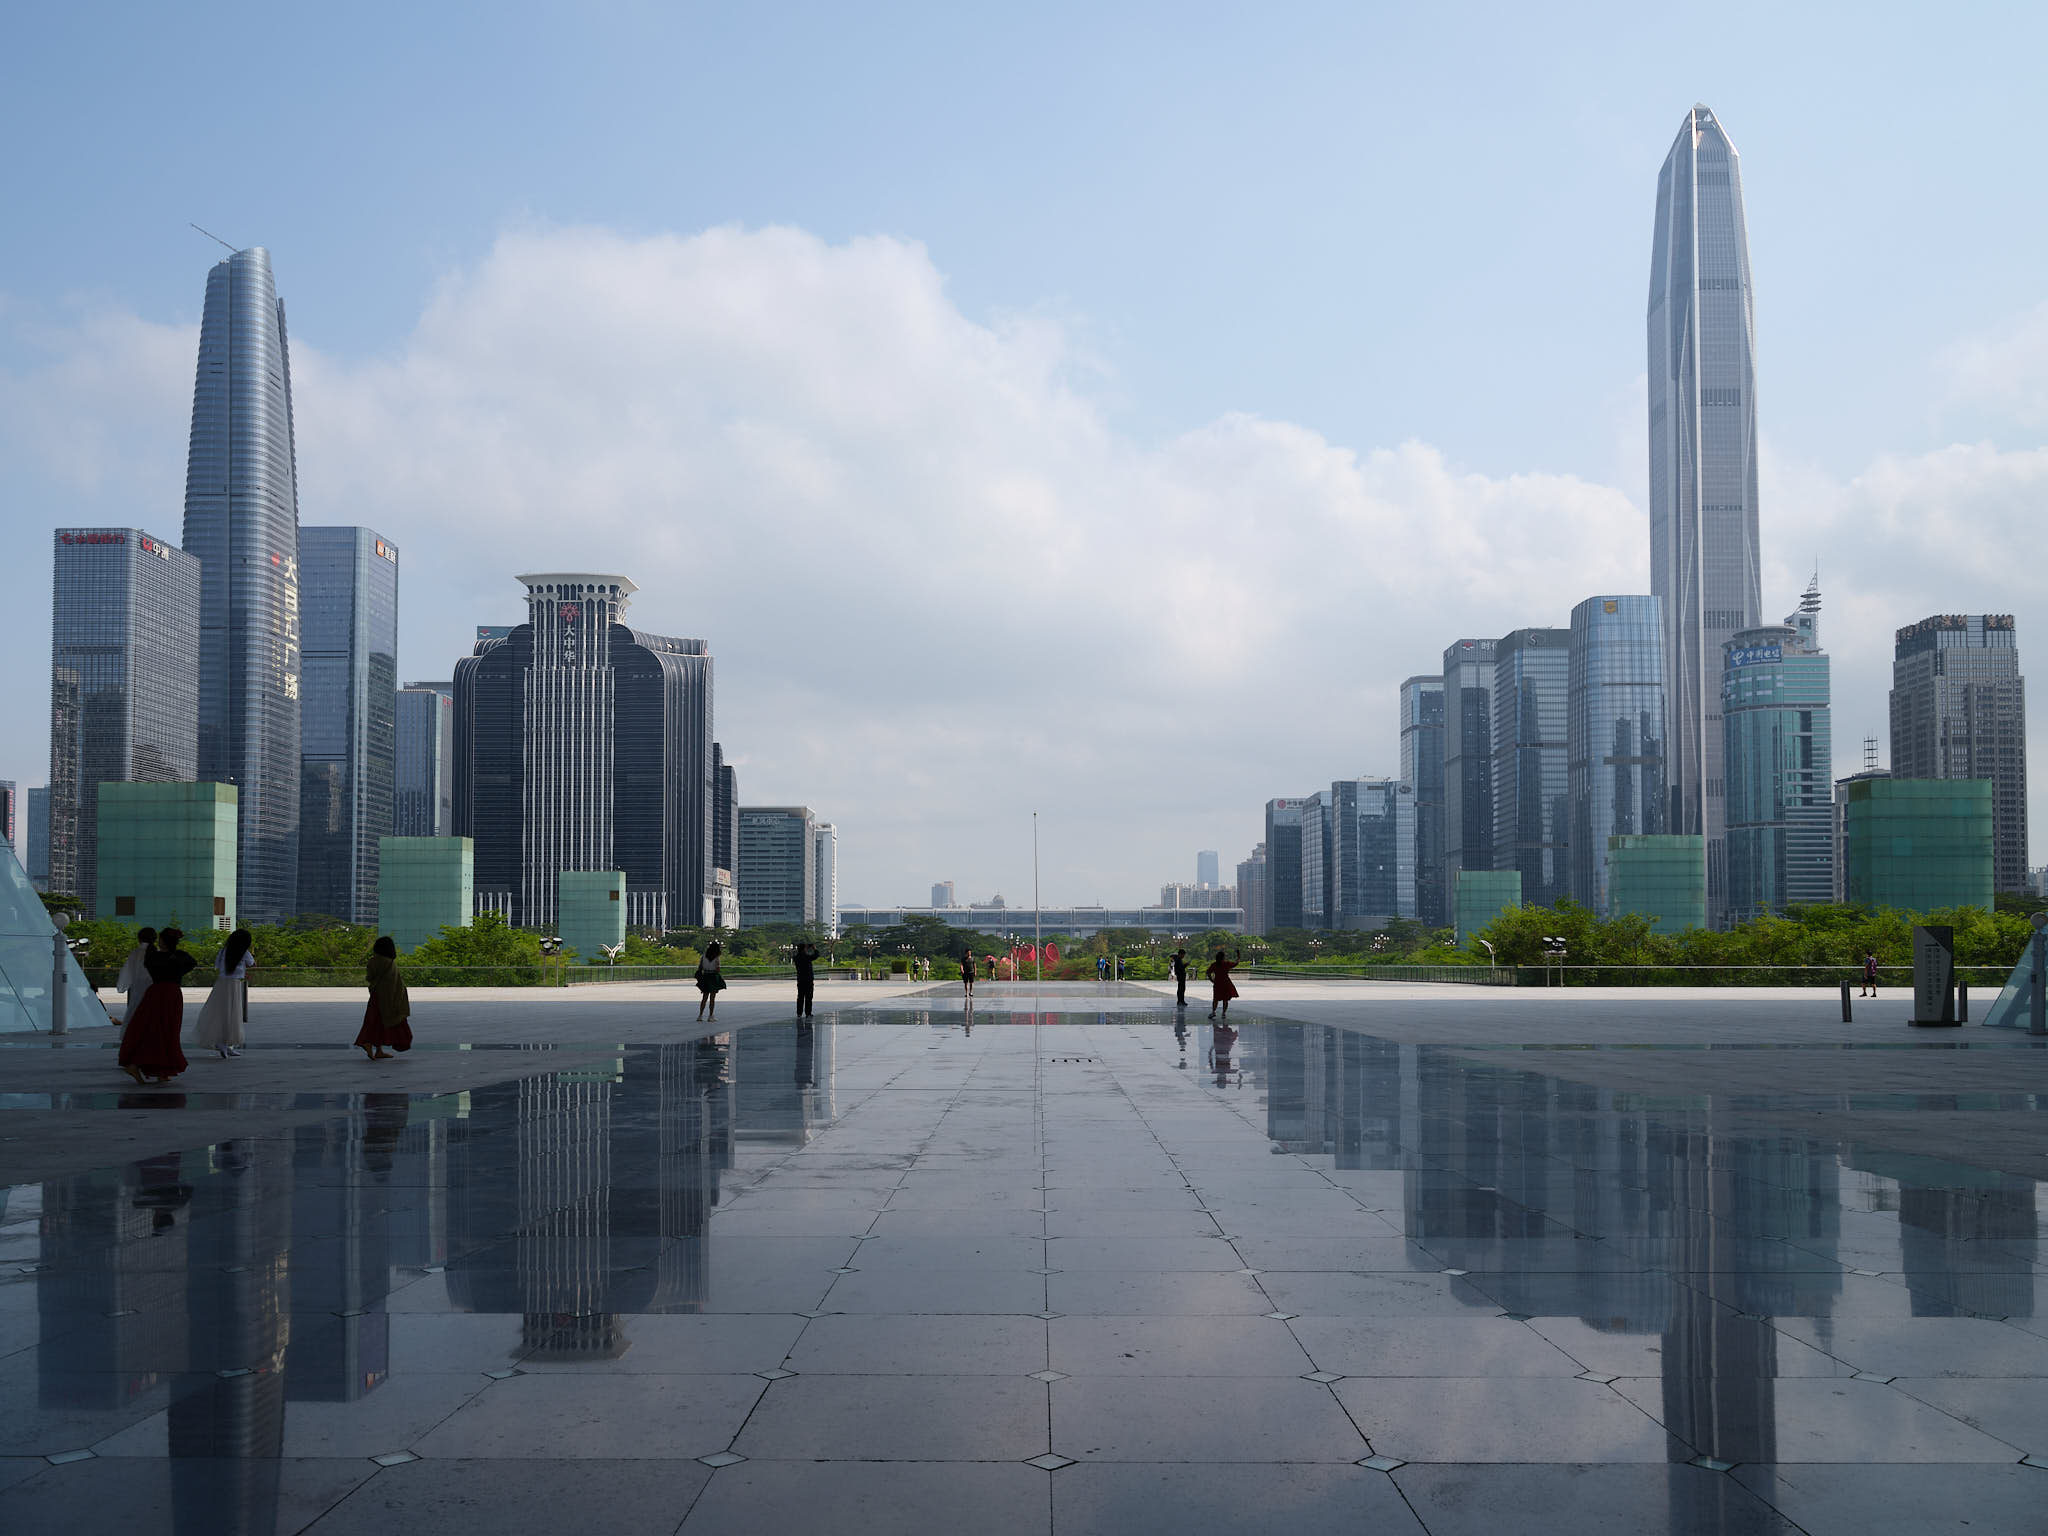 View of Shenzhen skyline from cultural center